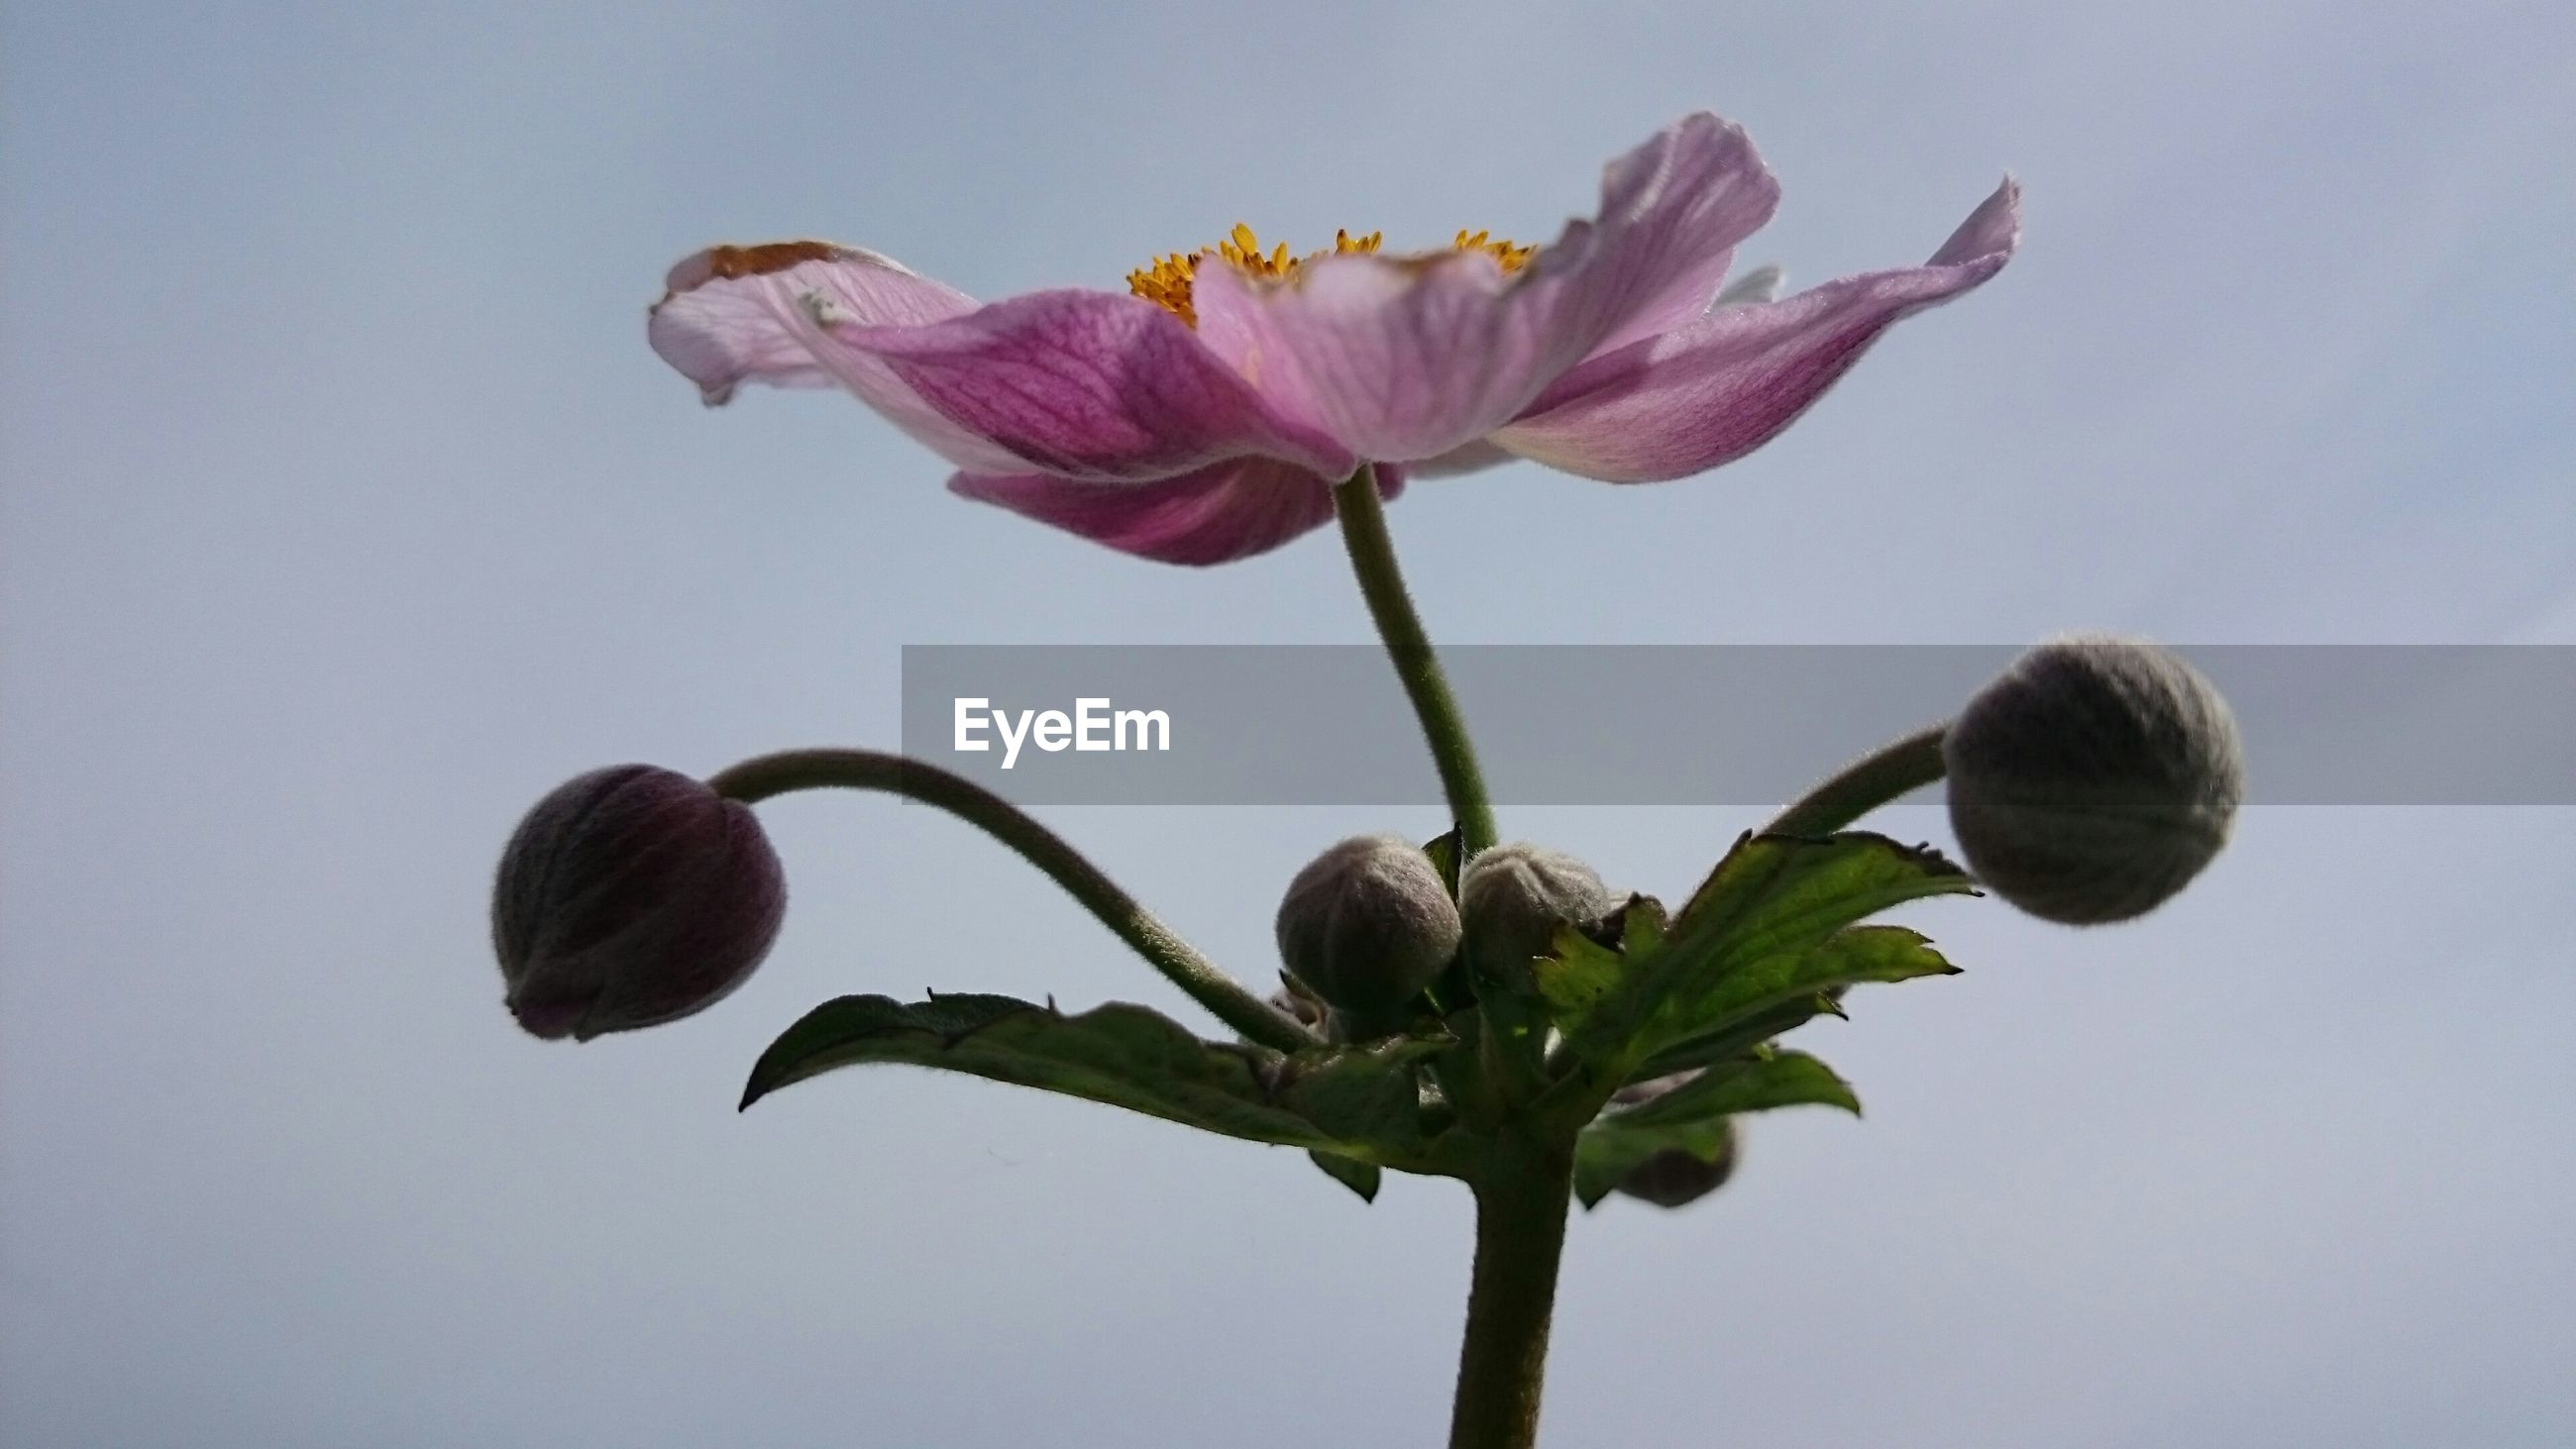 Close-up of pink flower with buds growing against sky